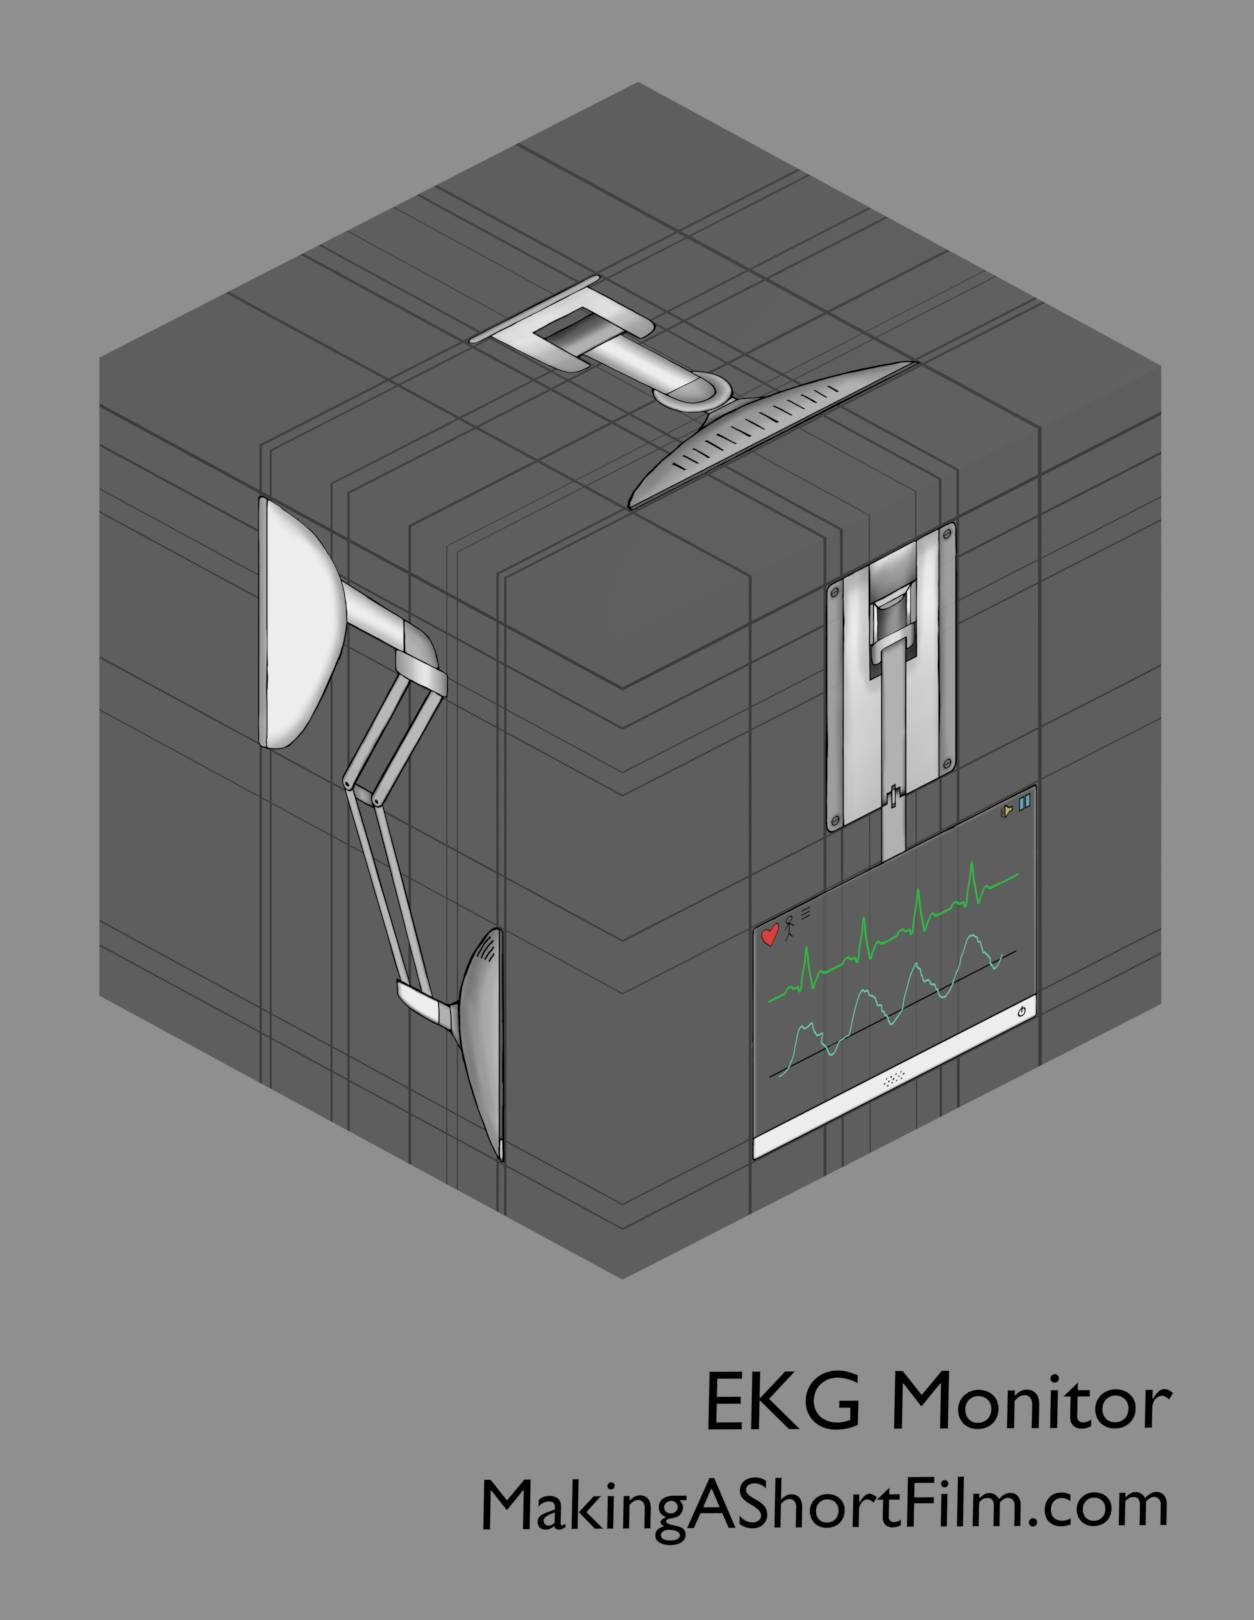 The concept art design for the EKG monitor presented in 3D with relationship lines